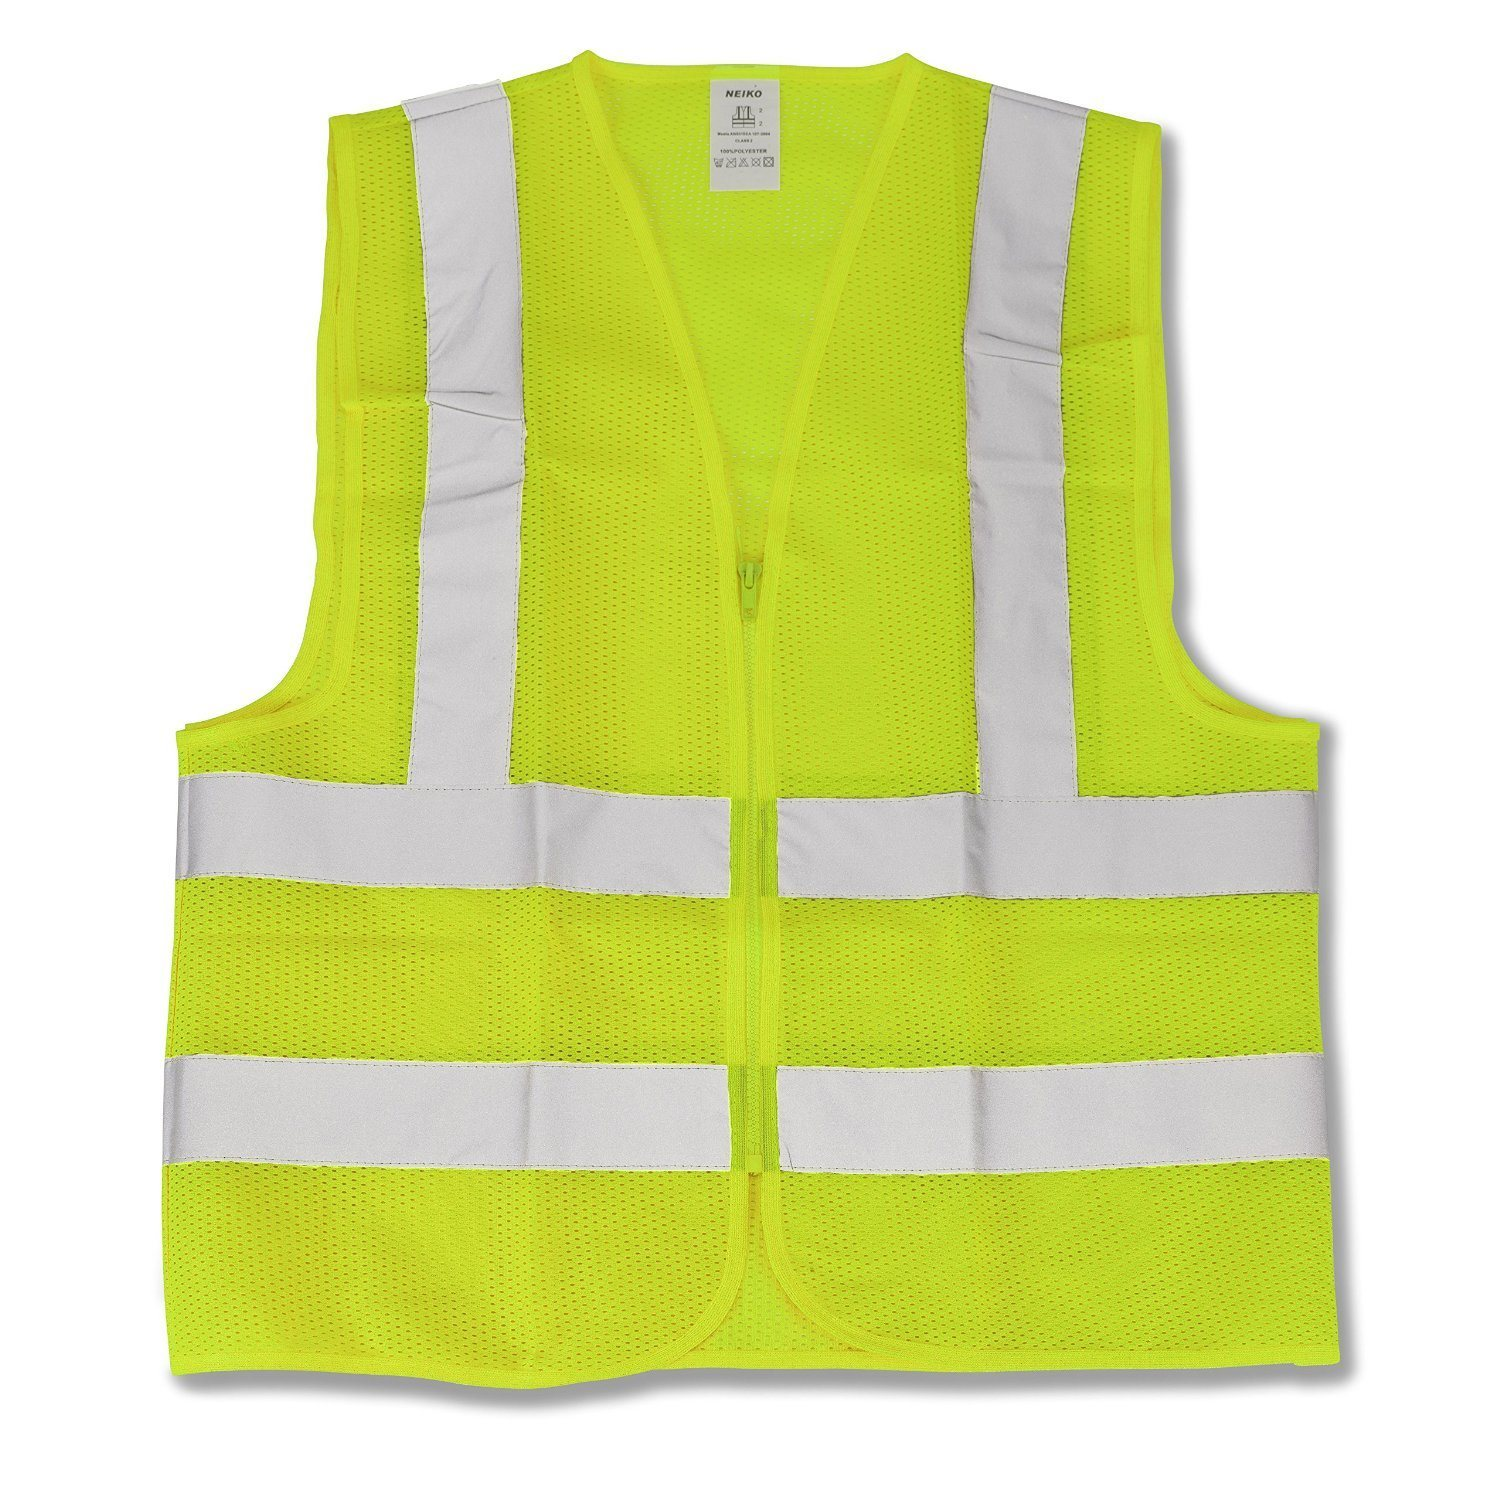 Neiko 53941A Neon Yellow ANSI Approved Safety Vest Large